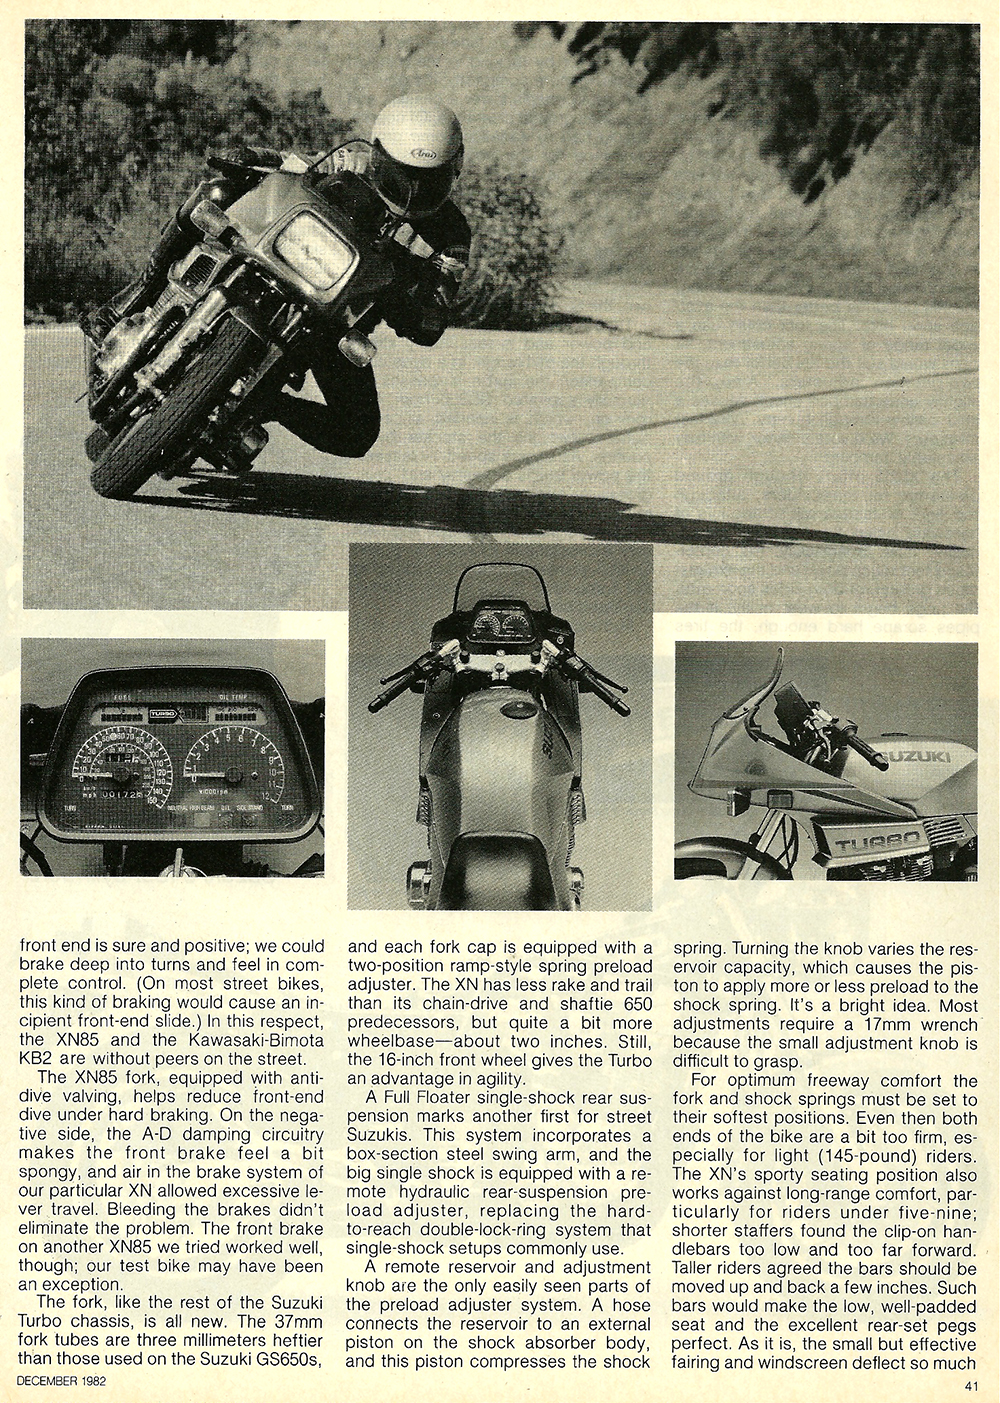 1983 Suzuki XN85 Turbo road test 4.jpg